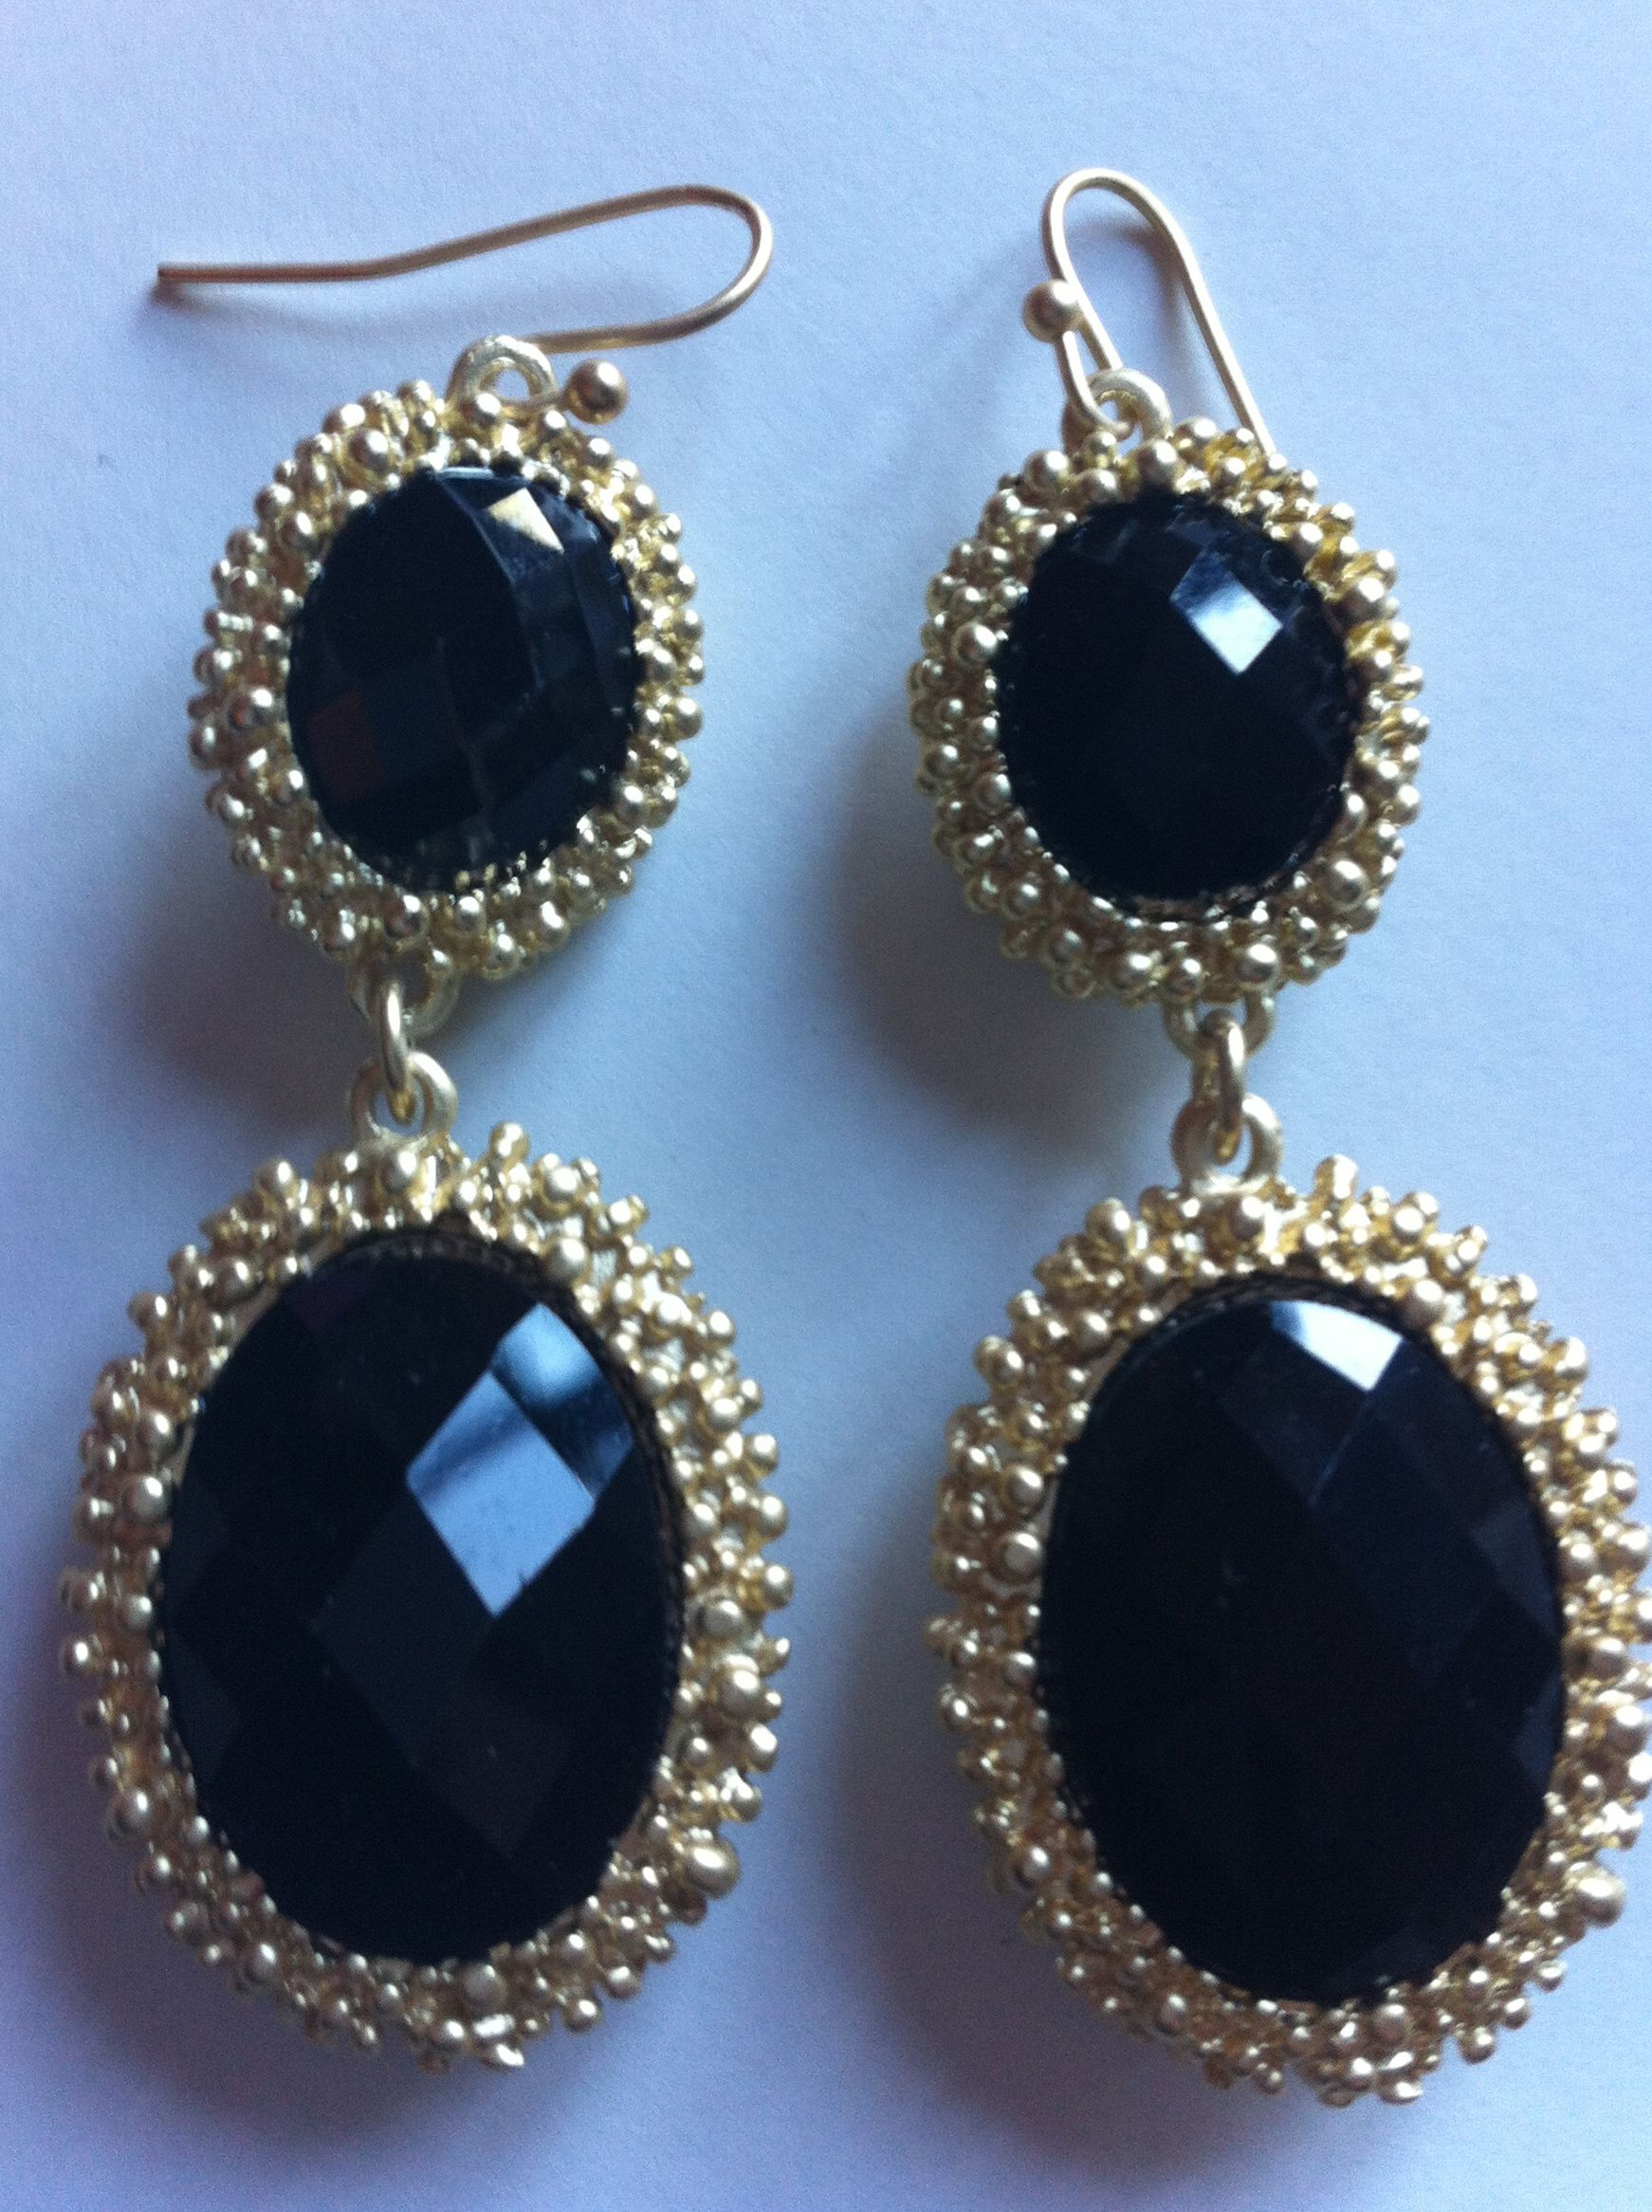 b173850f2 Allison Lauren earrings..very lightweight | I want ! | Earrings ...